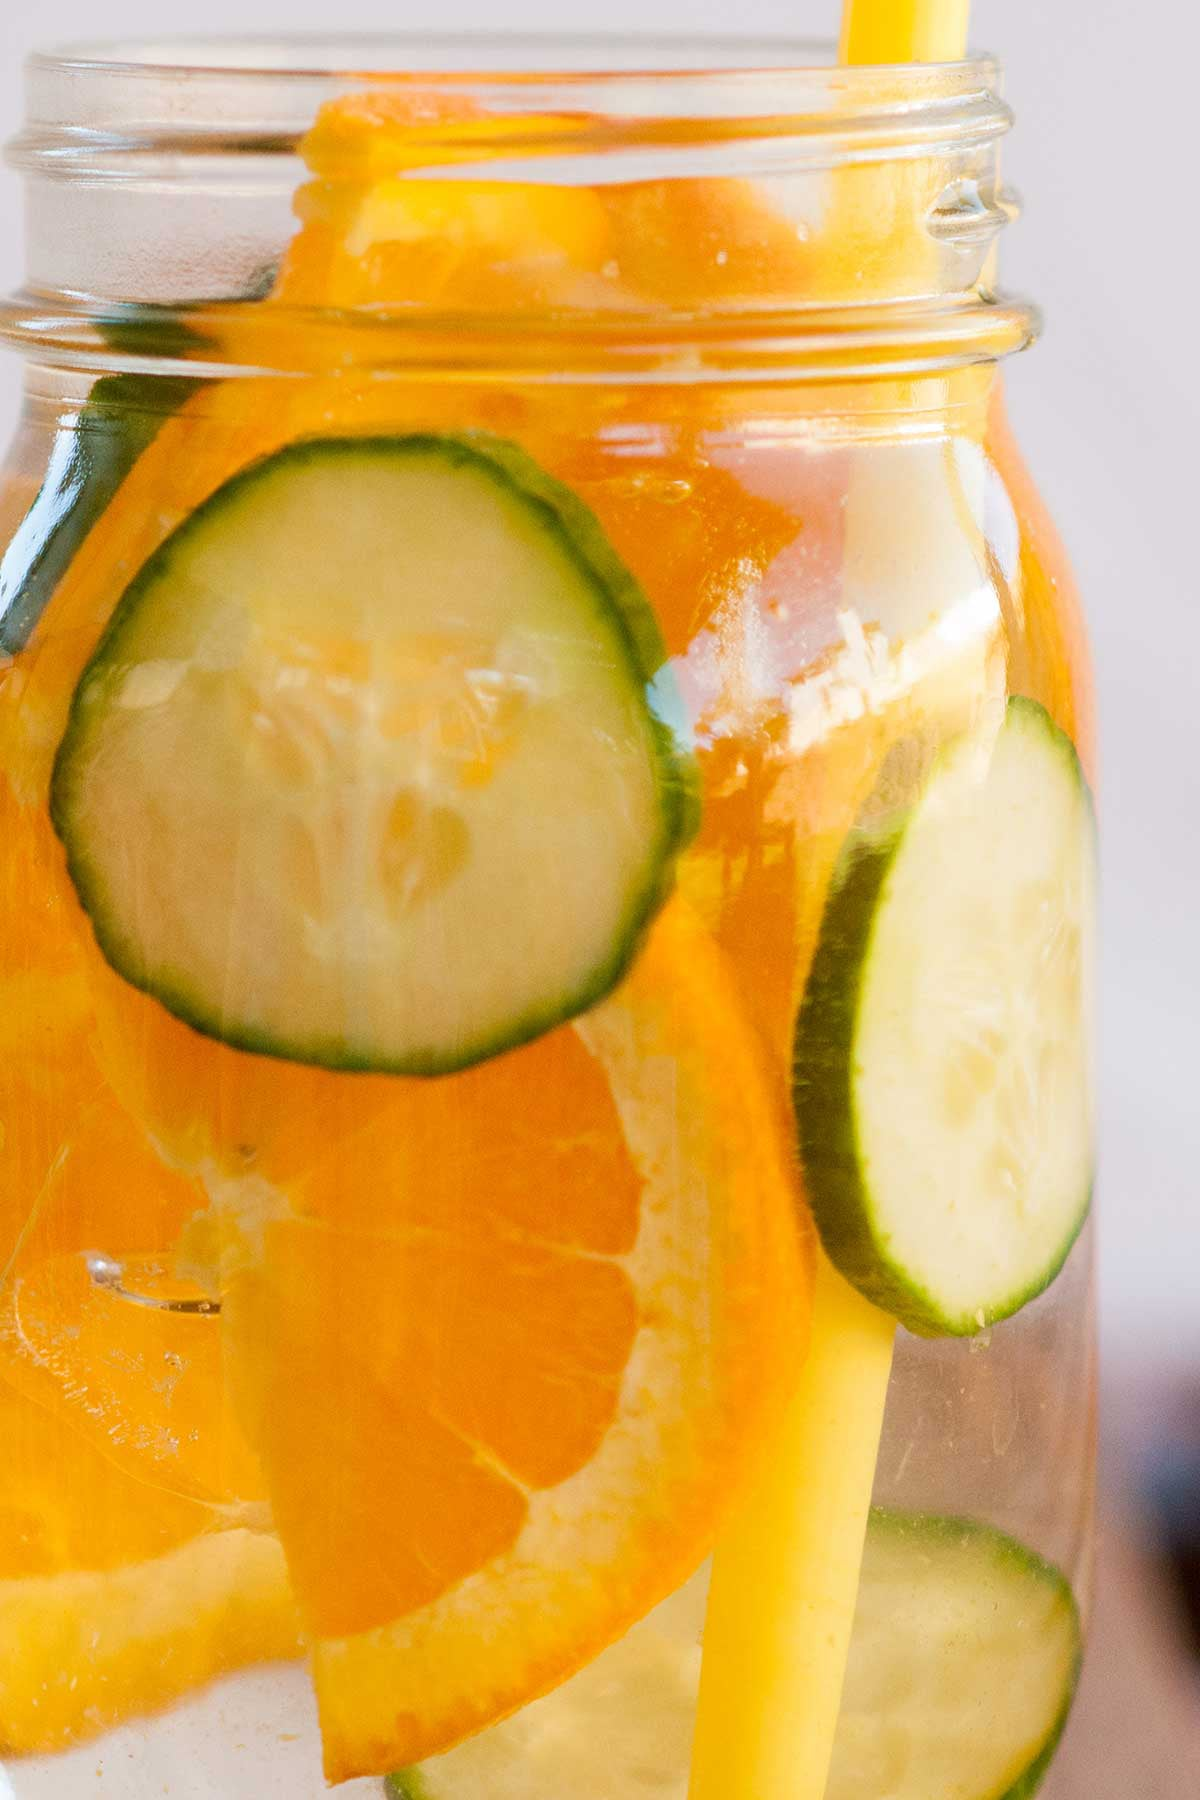 Flavored Water Recipes — Cue to the Orange Flavored Water